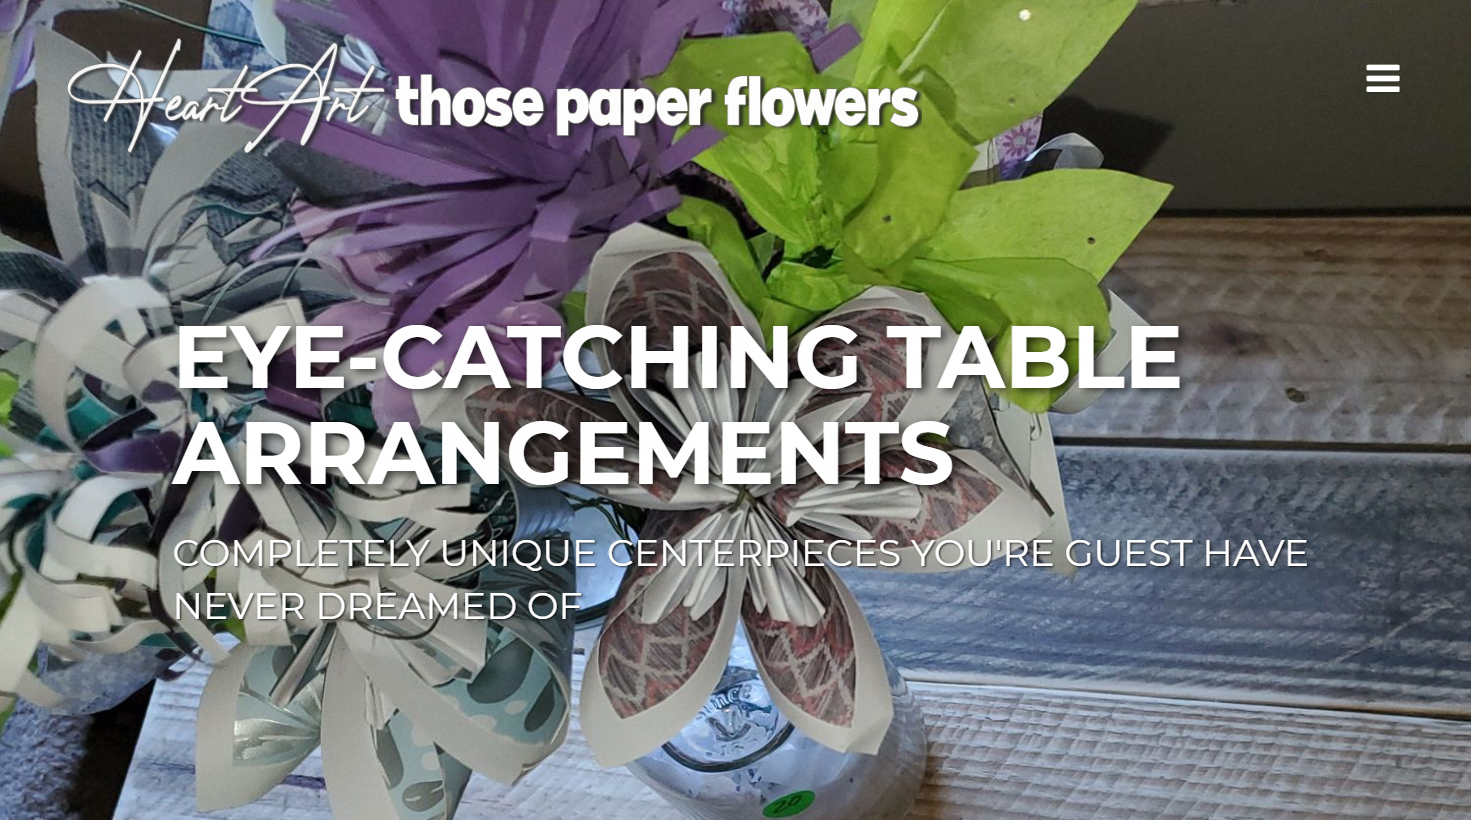 An full-blown, responsove website for my ficticious Paper Flower Company, Those Paper Flowers. You can view the entire site here: <a href='http://thosepaperflowers.ga'>ThosePaperFlowers.ga</a>